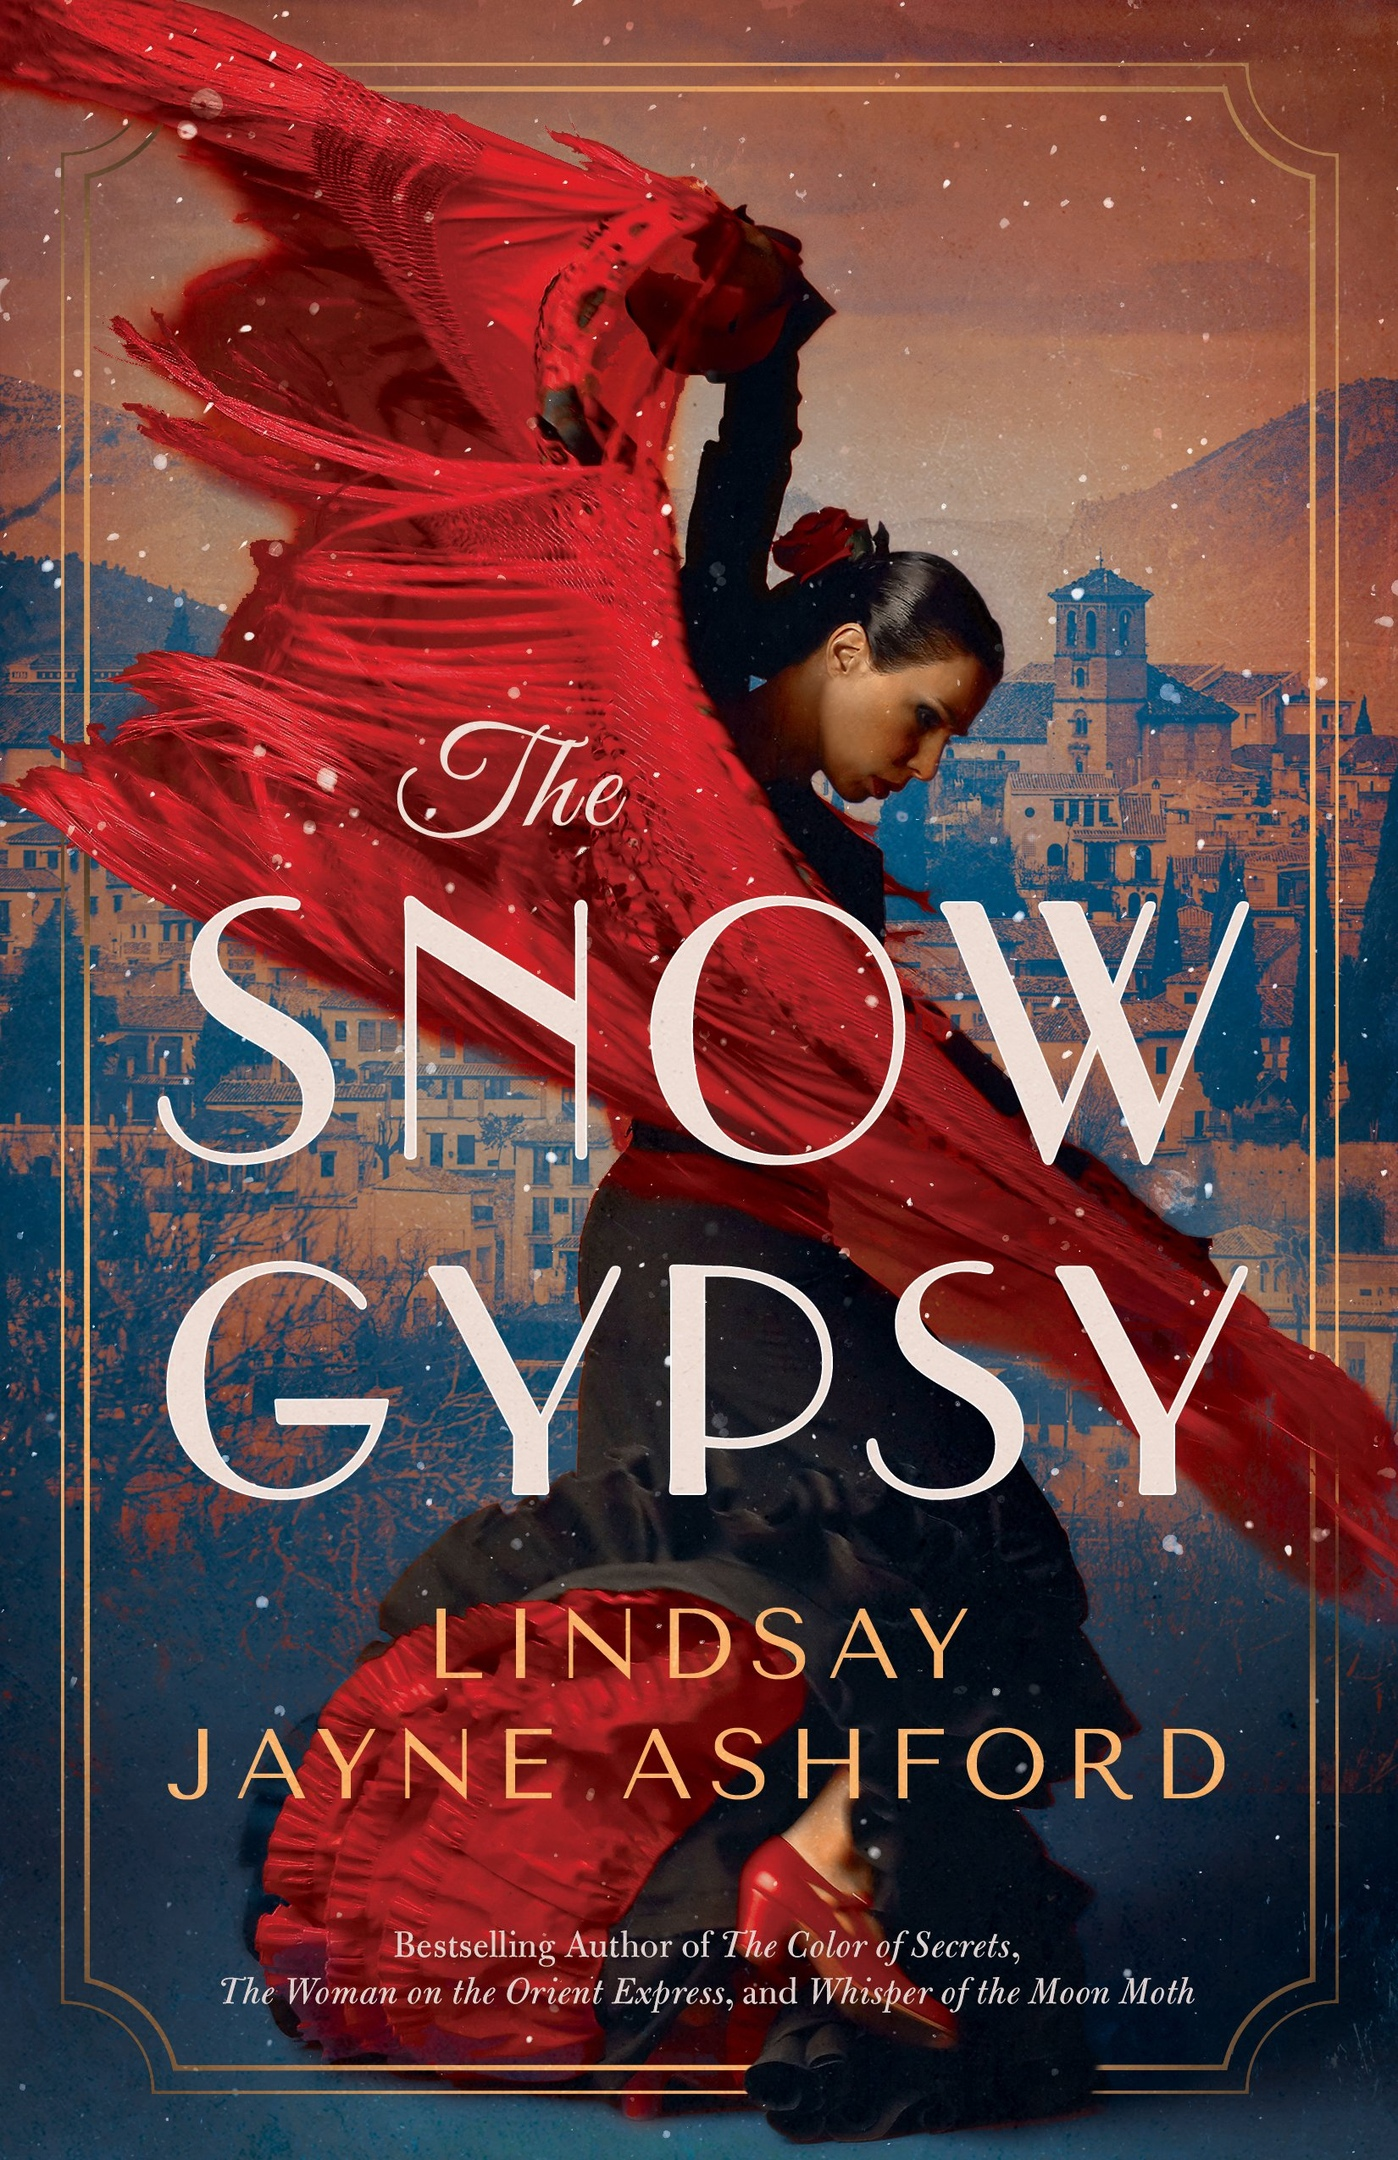 Lindsay Jayne Ashford – The Snow Gypsy